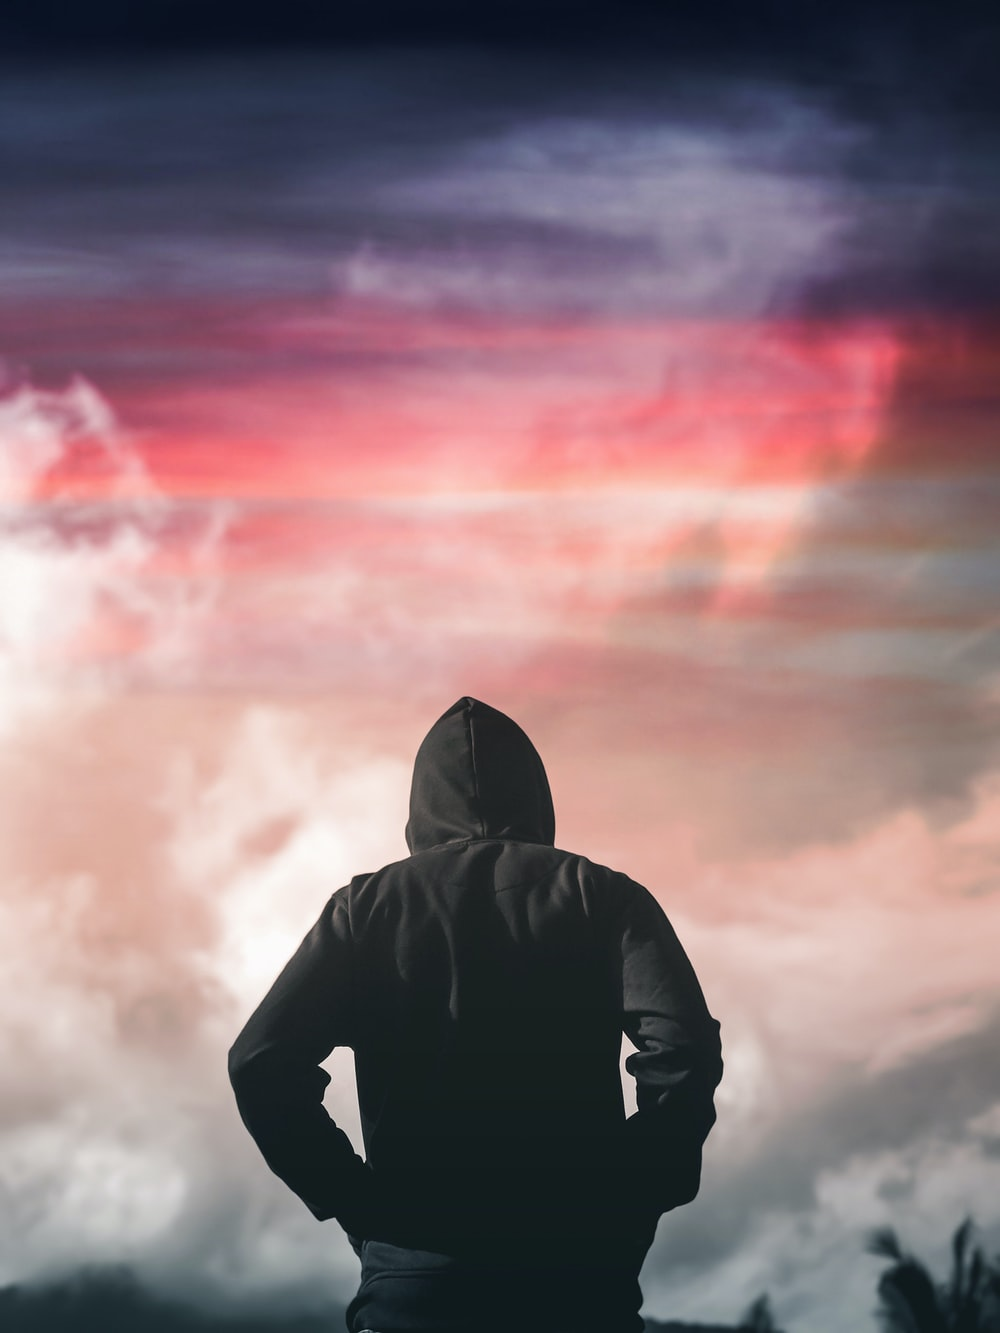 person in black hoodie standing under cloudy sky during daytime